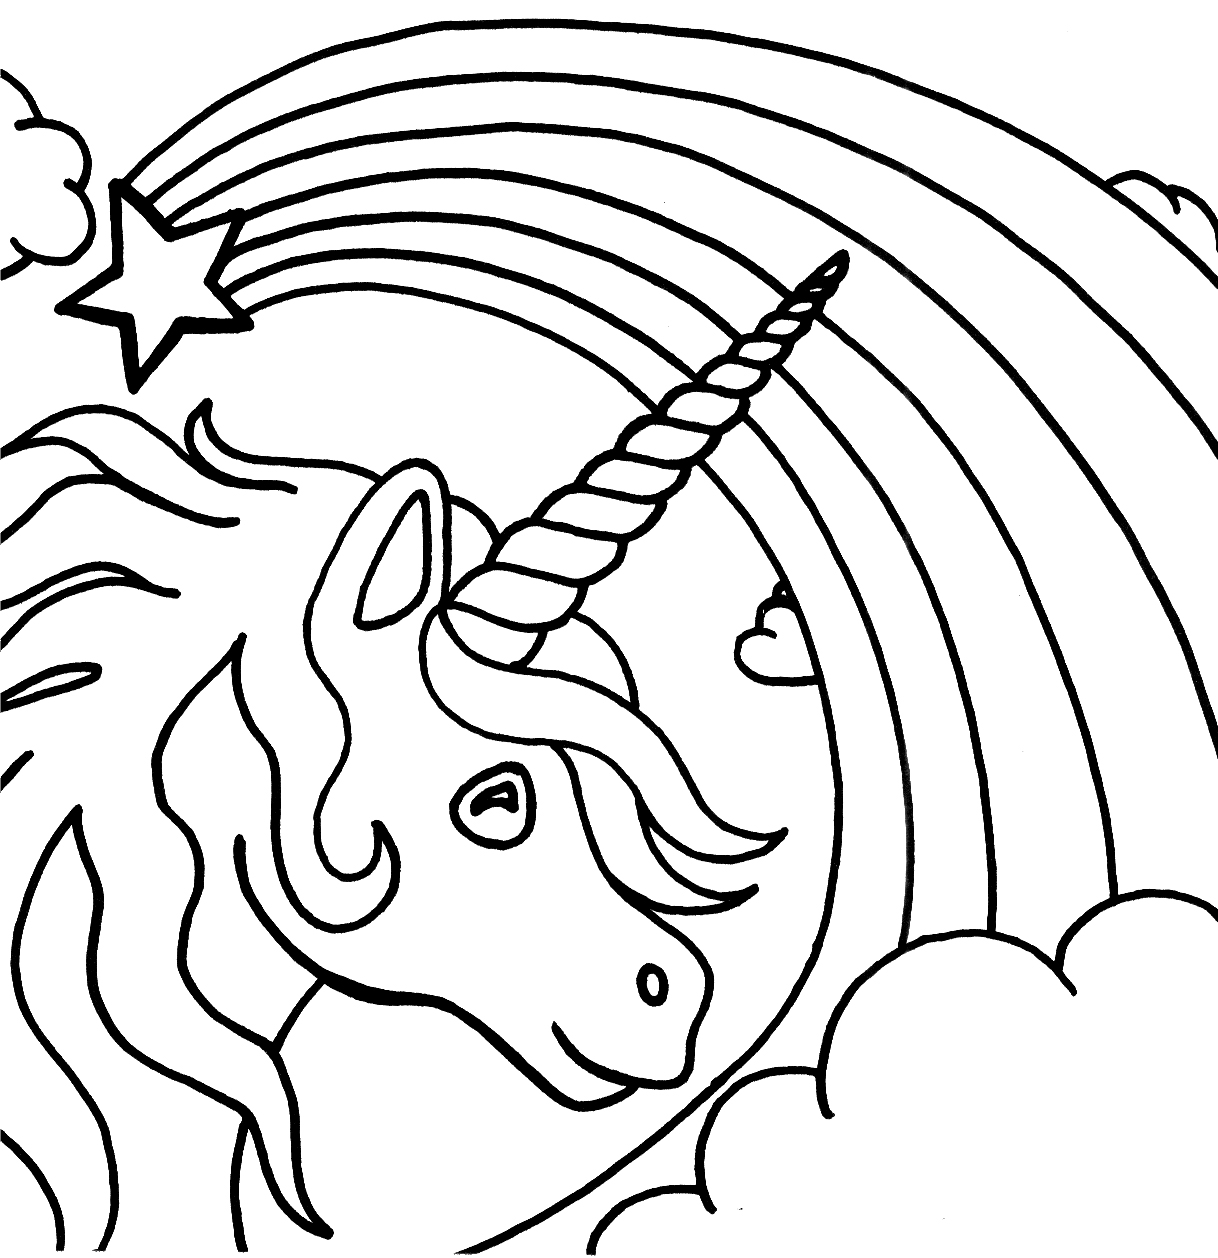 photograph about Rainbow Printable Coloring Pages referred to as Free of charge Coloring Webpages Of A Unicorn